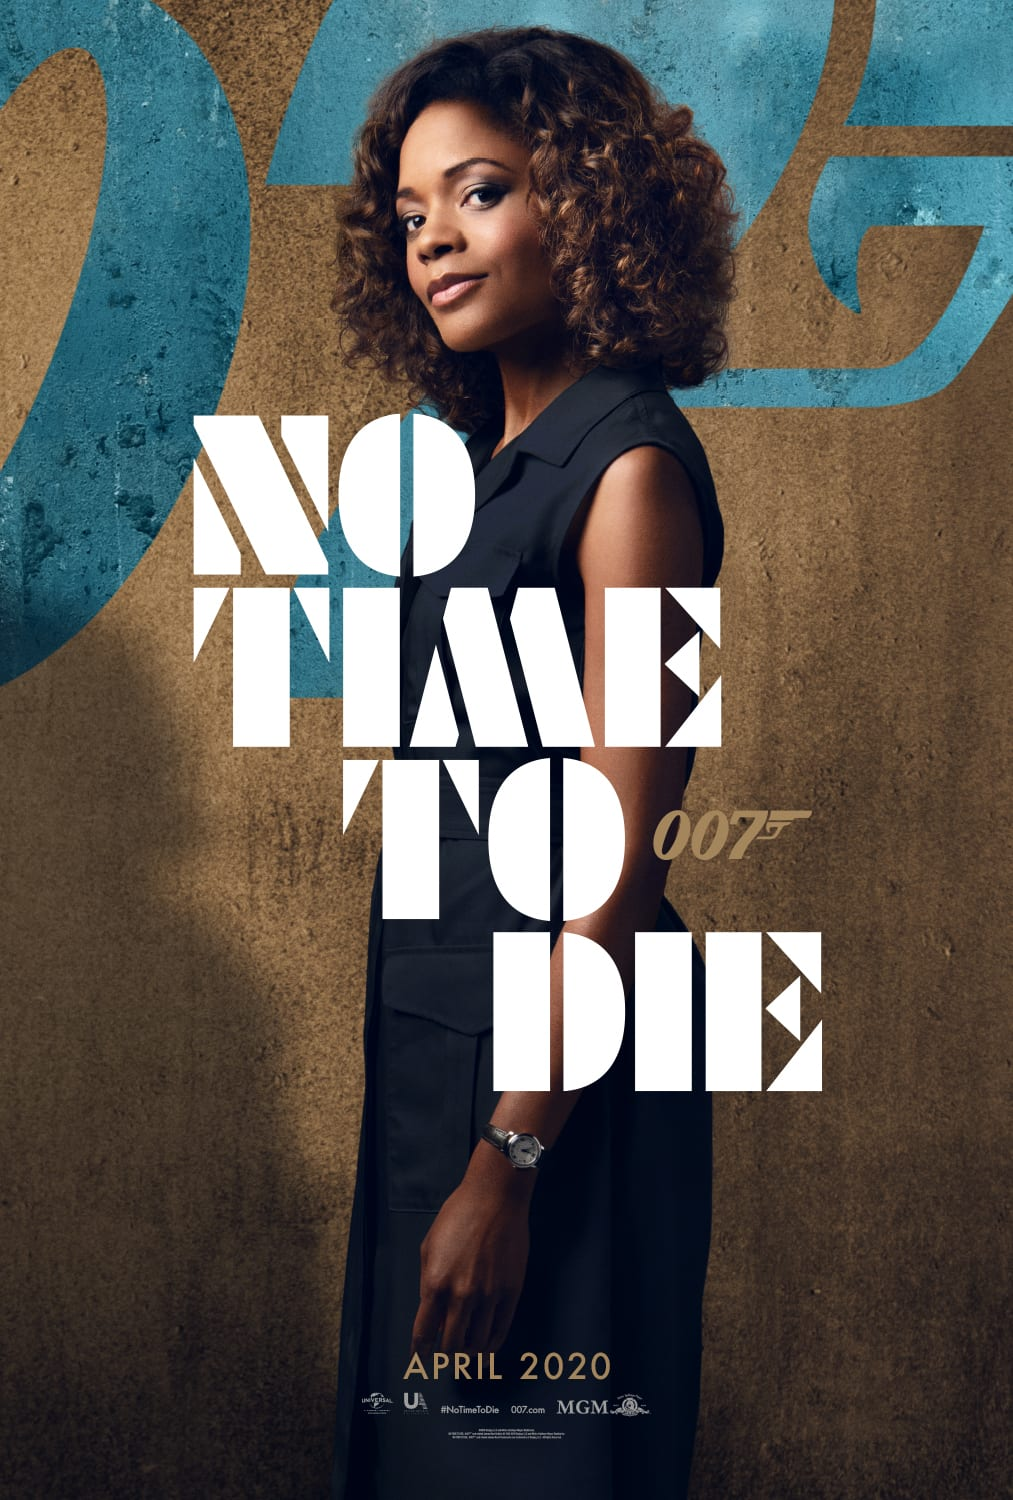 007 No Time To Die Bond 25 Character Posters Naomi Harris as Eve Moneypenny